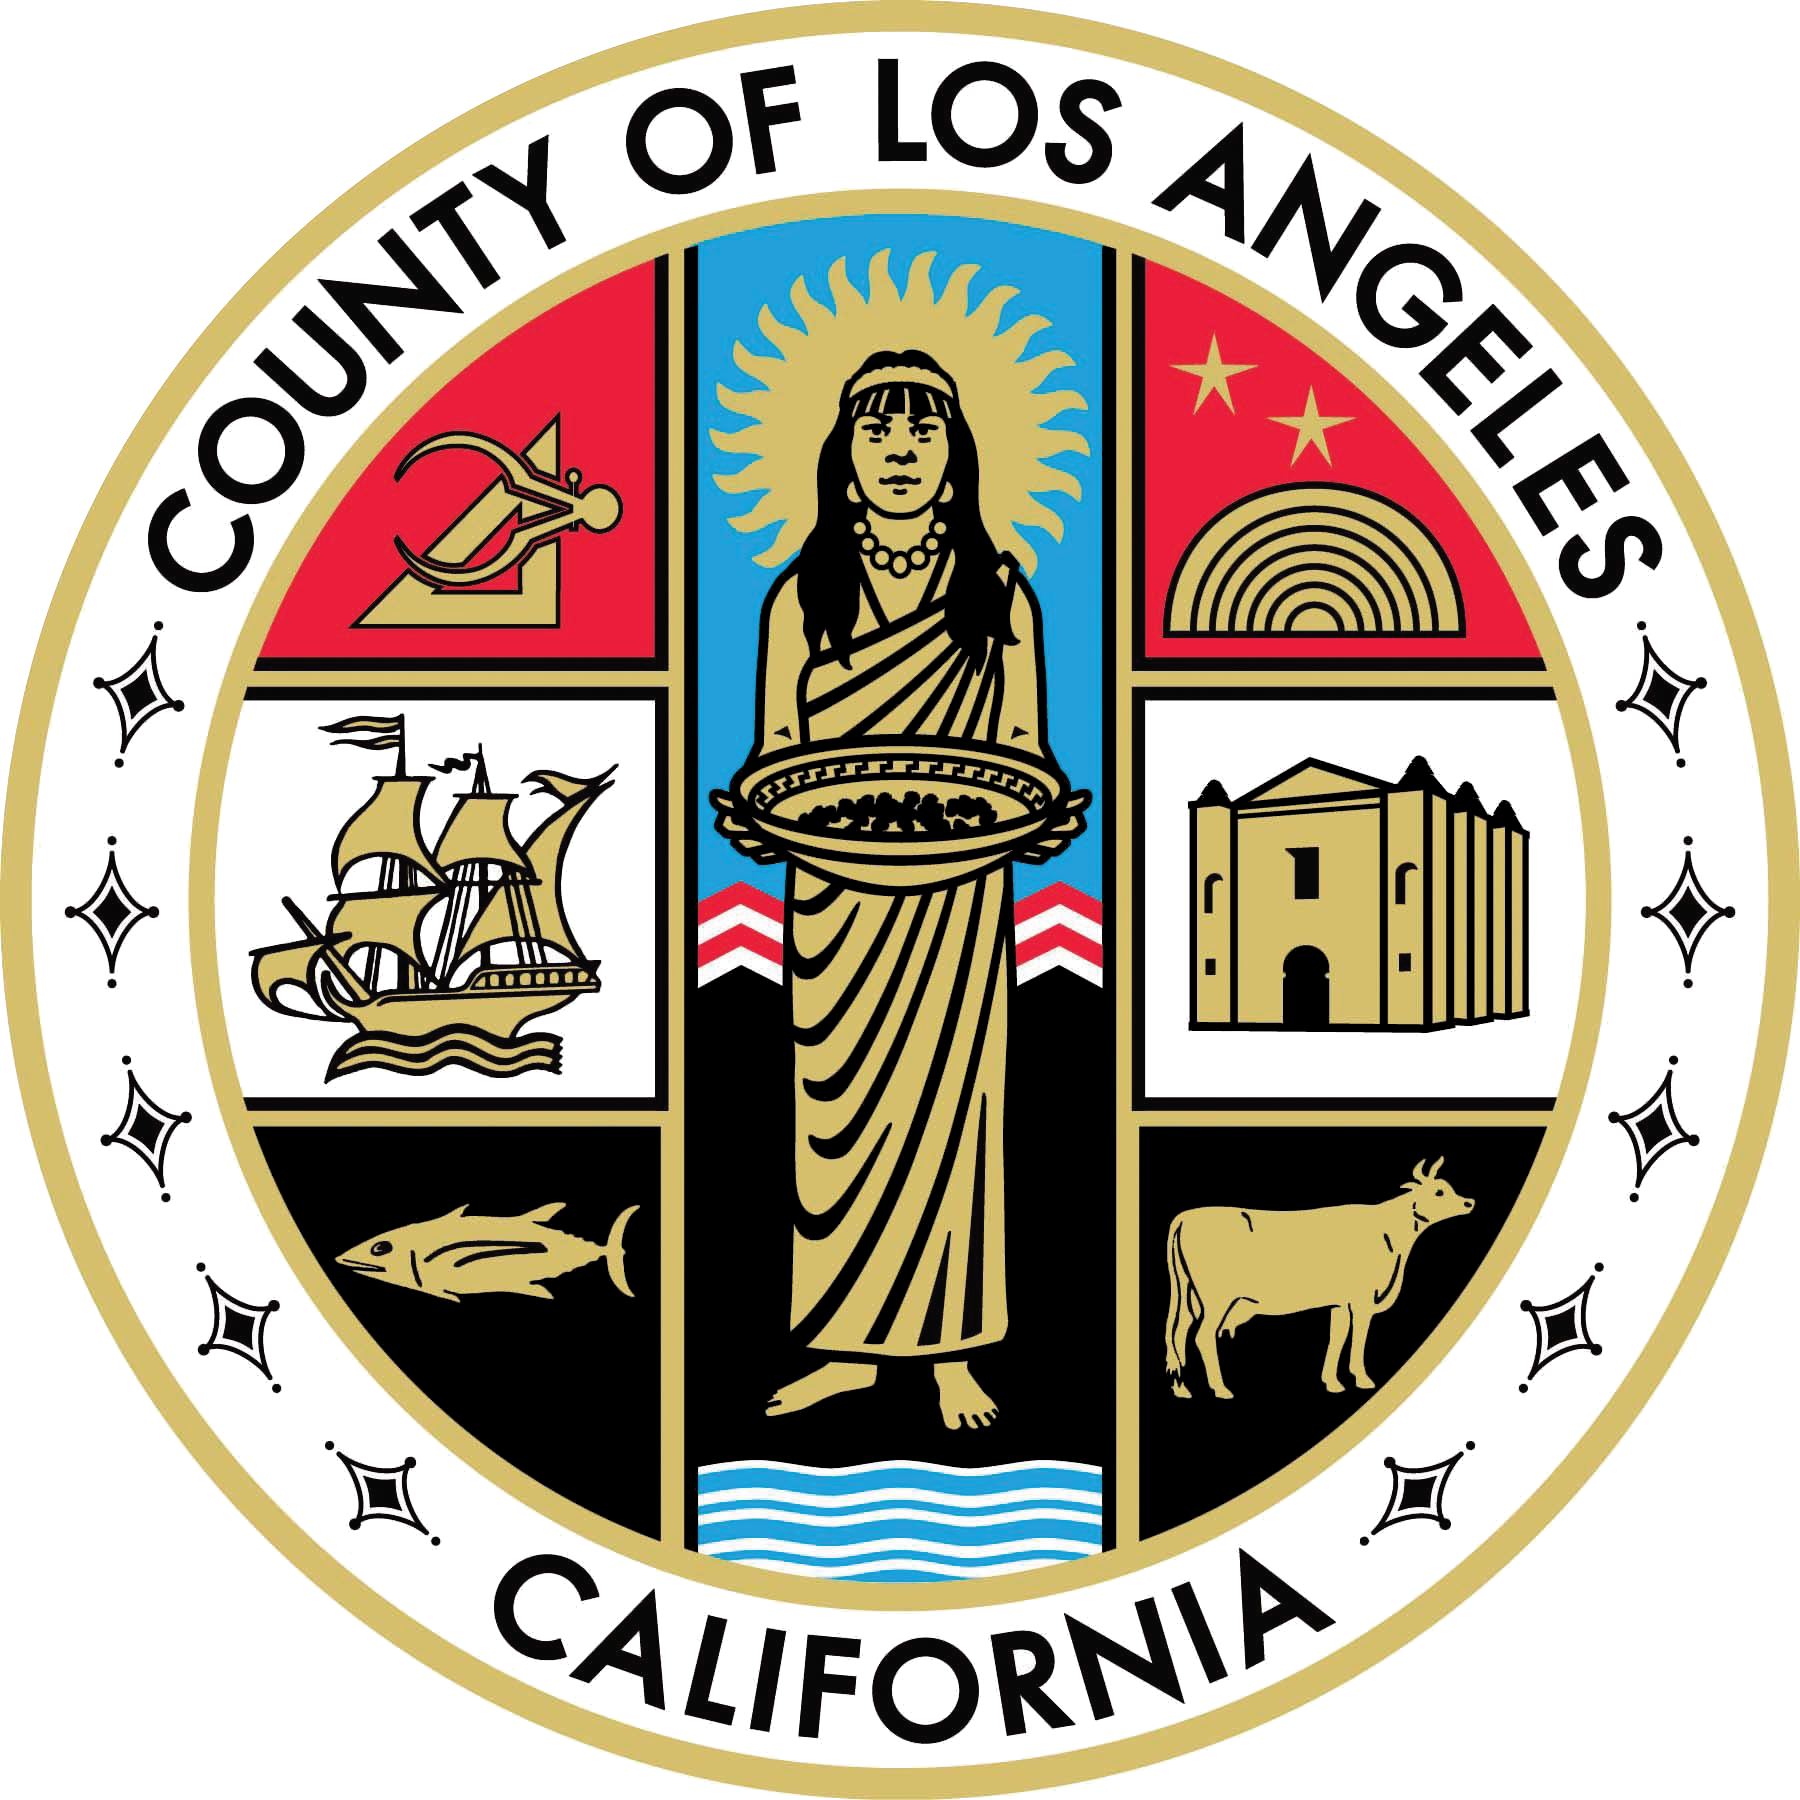 LA County Board of Supervisors Affordable Housing Motion